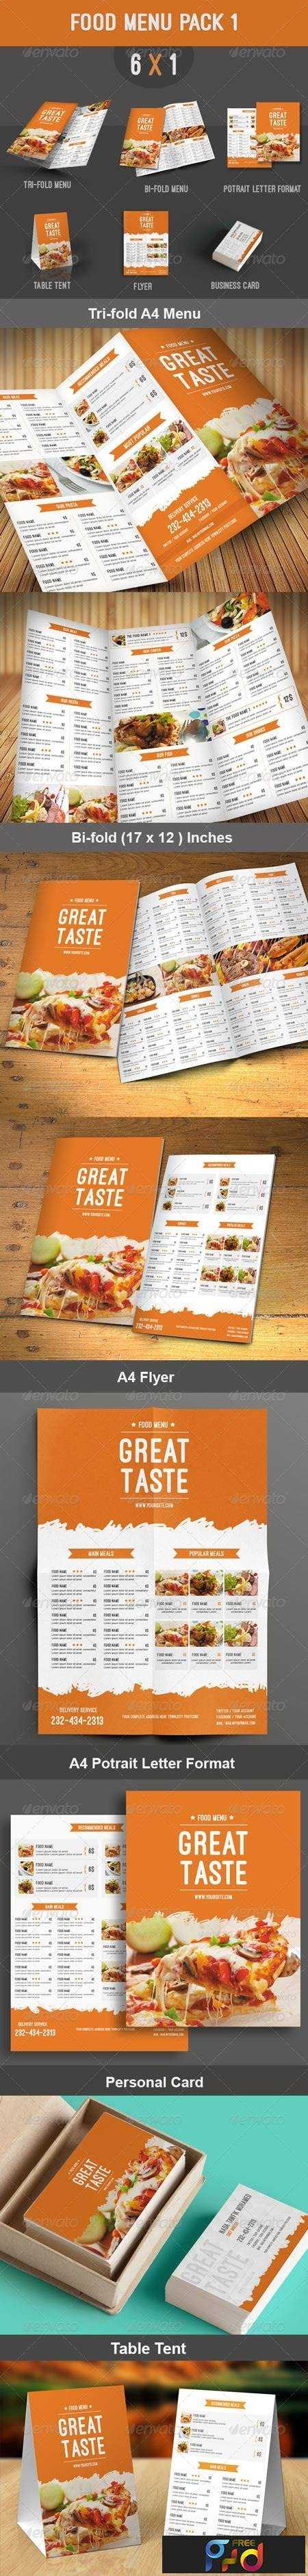 freepsdvn-com_1409292259_food-menu-pack-1-8272093